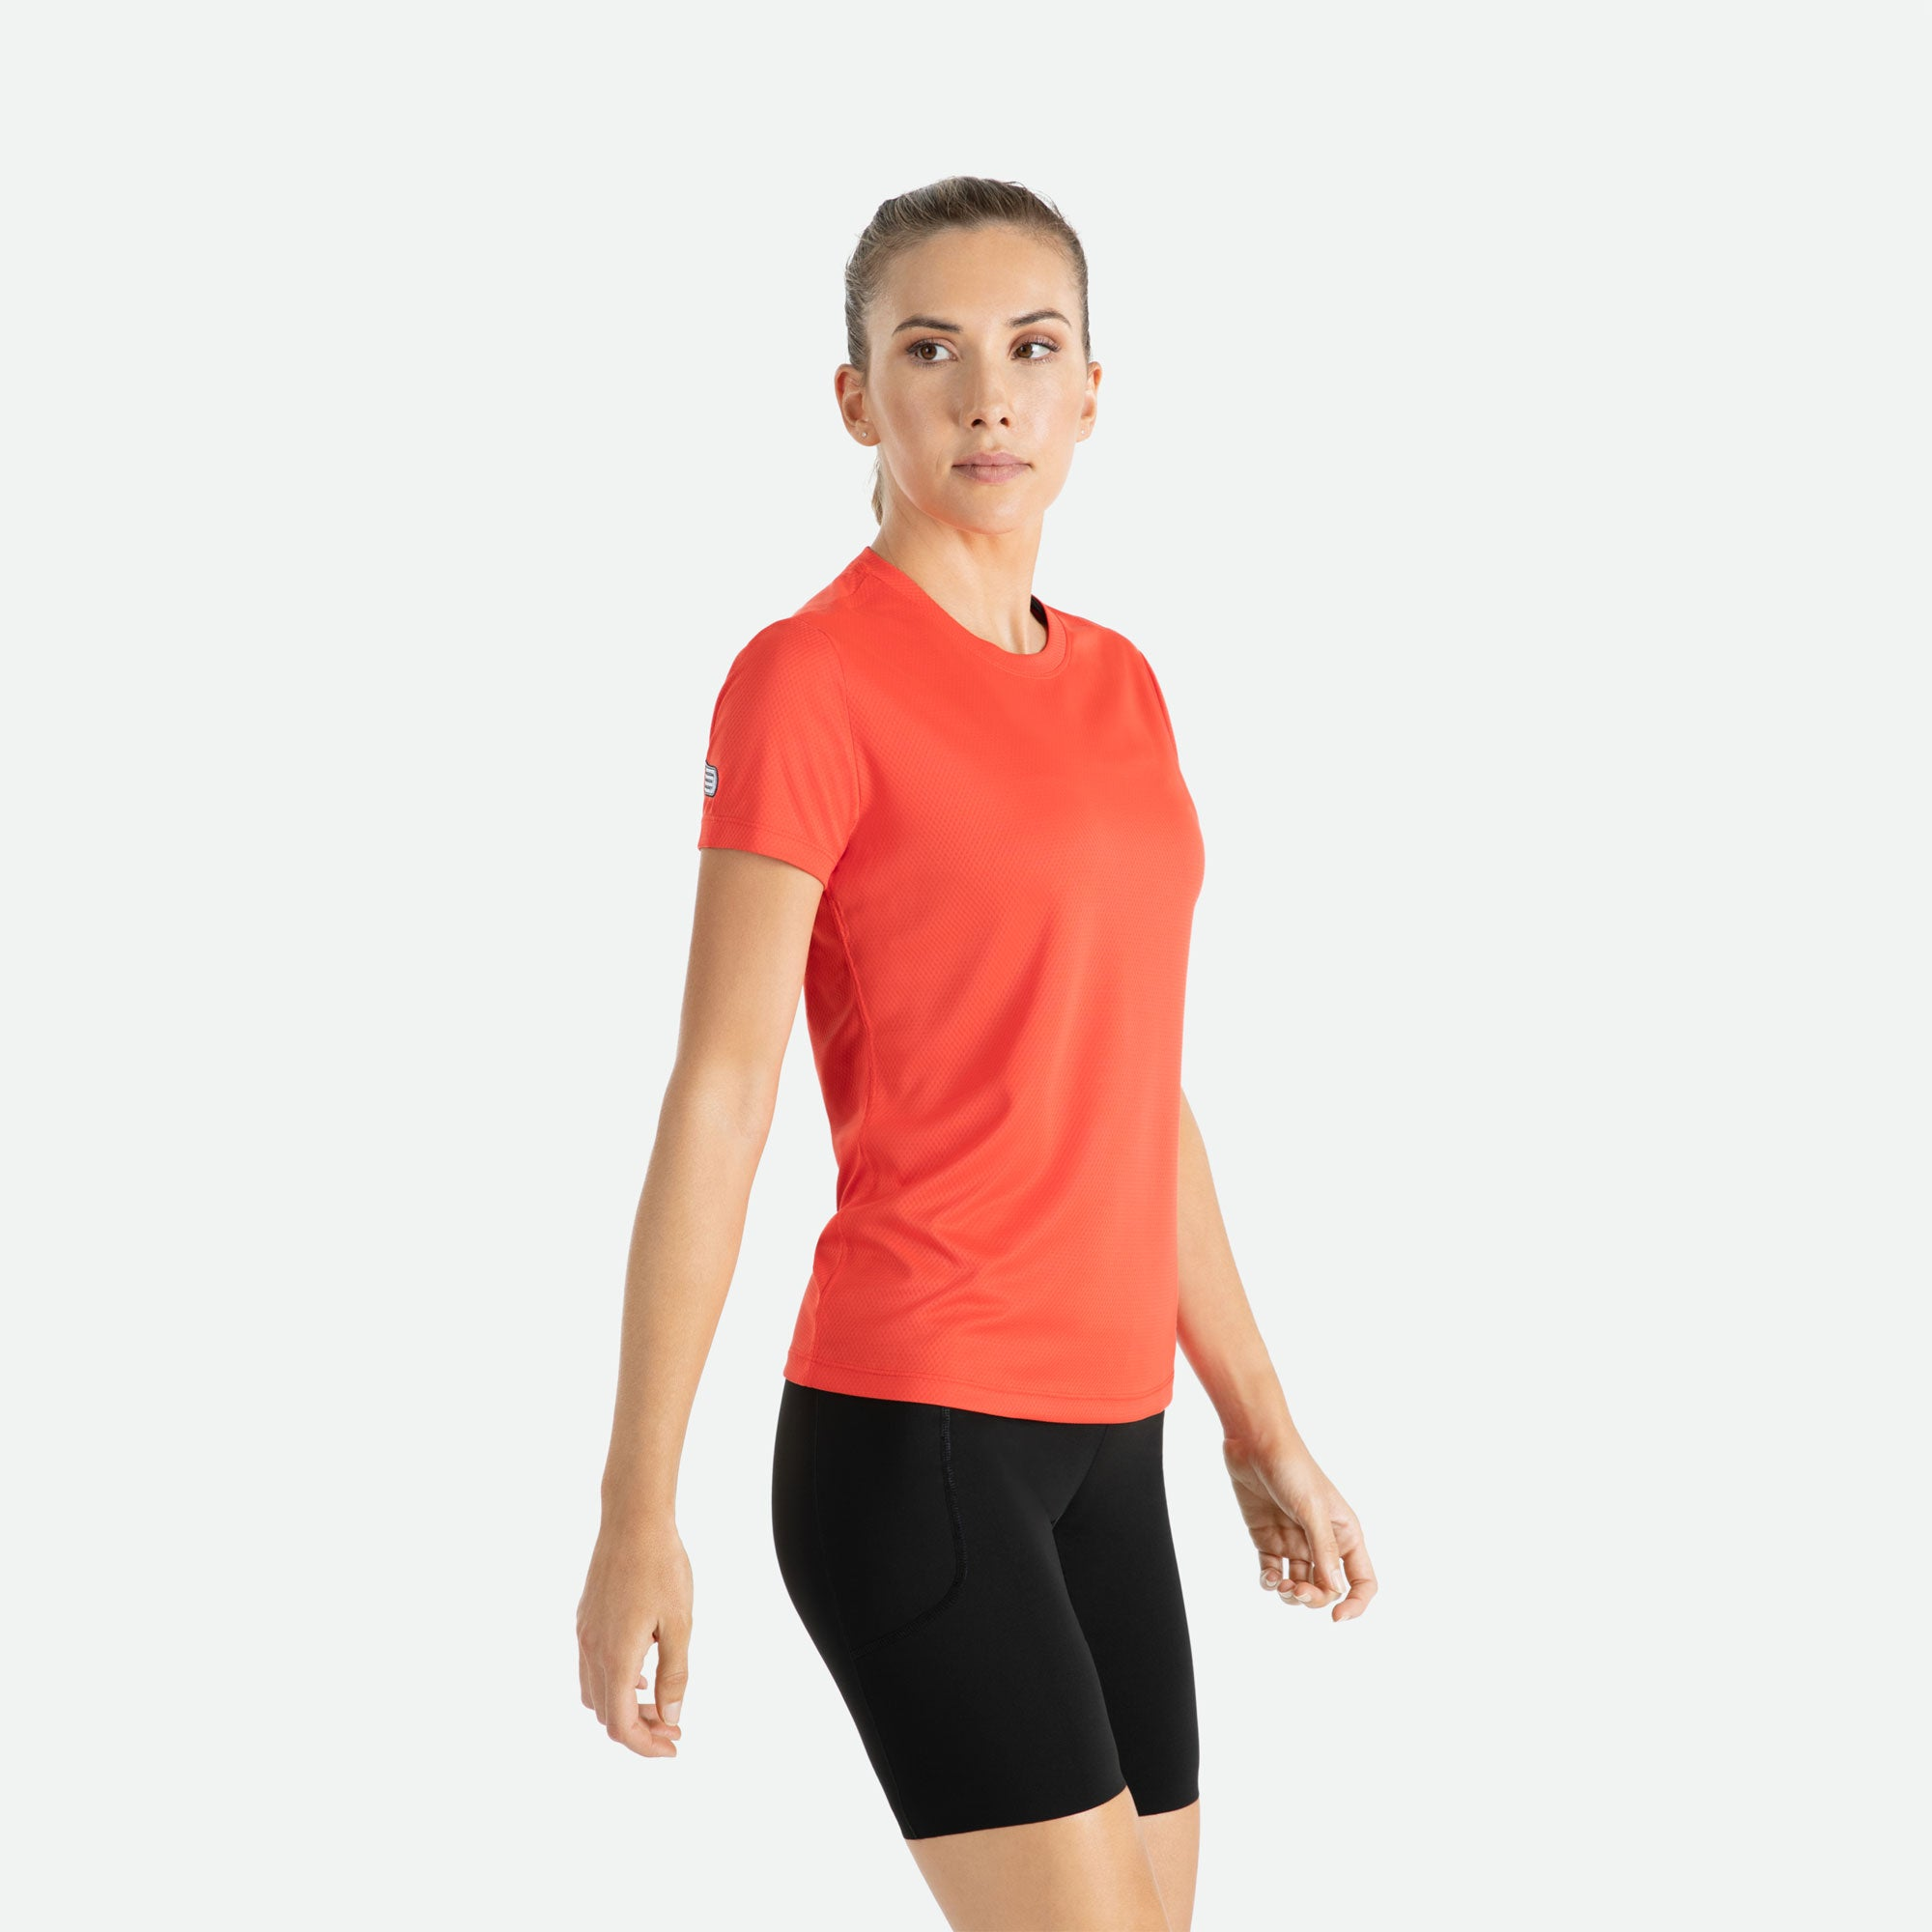 Our Pressio women's red Hāpai short sleeve t-shirt features EcoTECH MF fabric which has dual filament recycled polyester yarns from Unifi for superior moisture control to keep you dry.